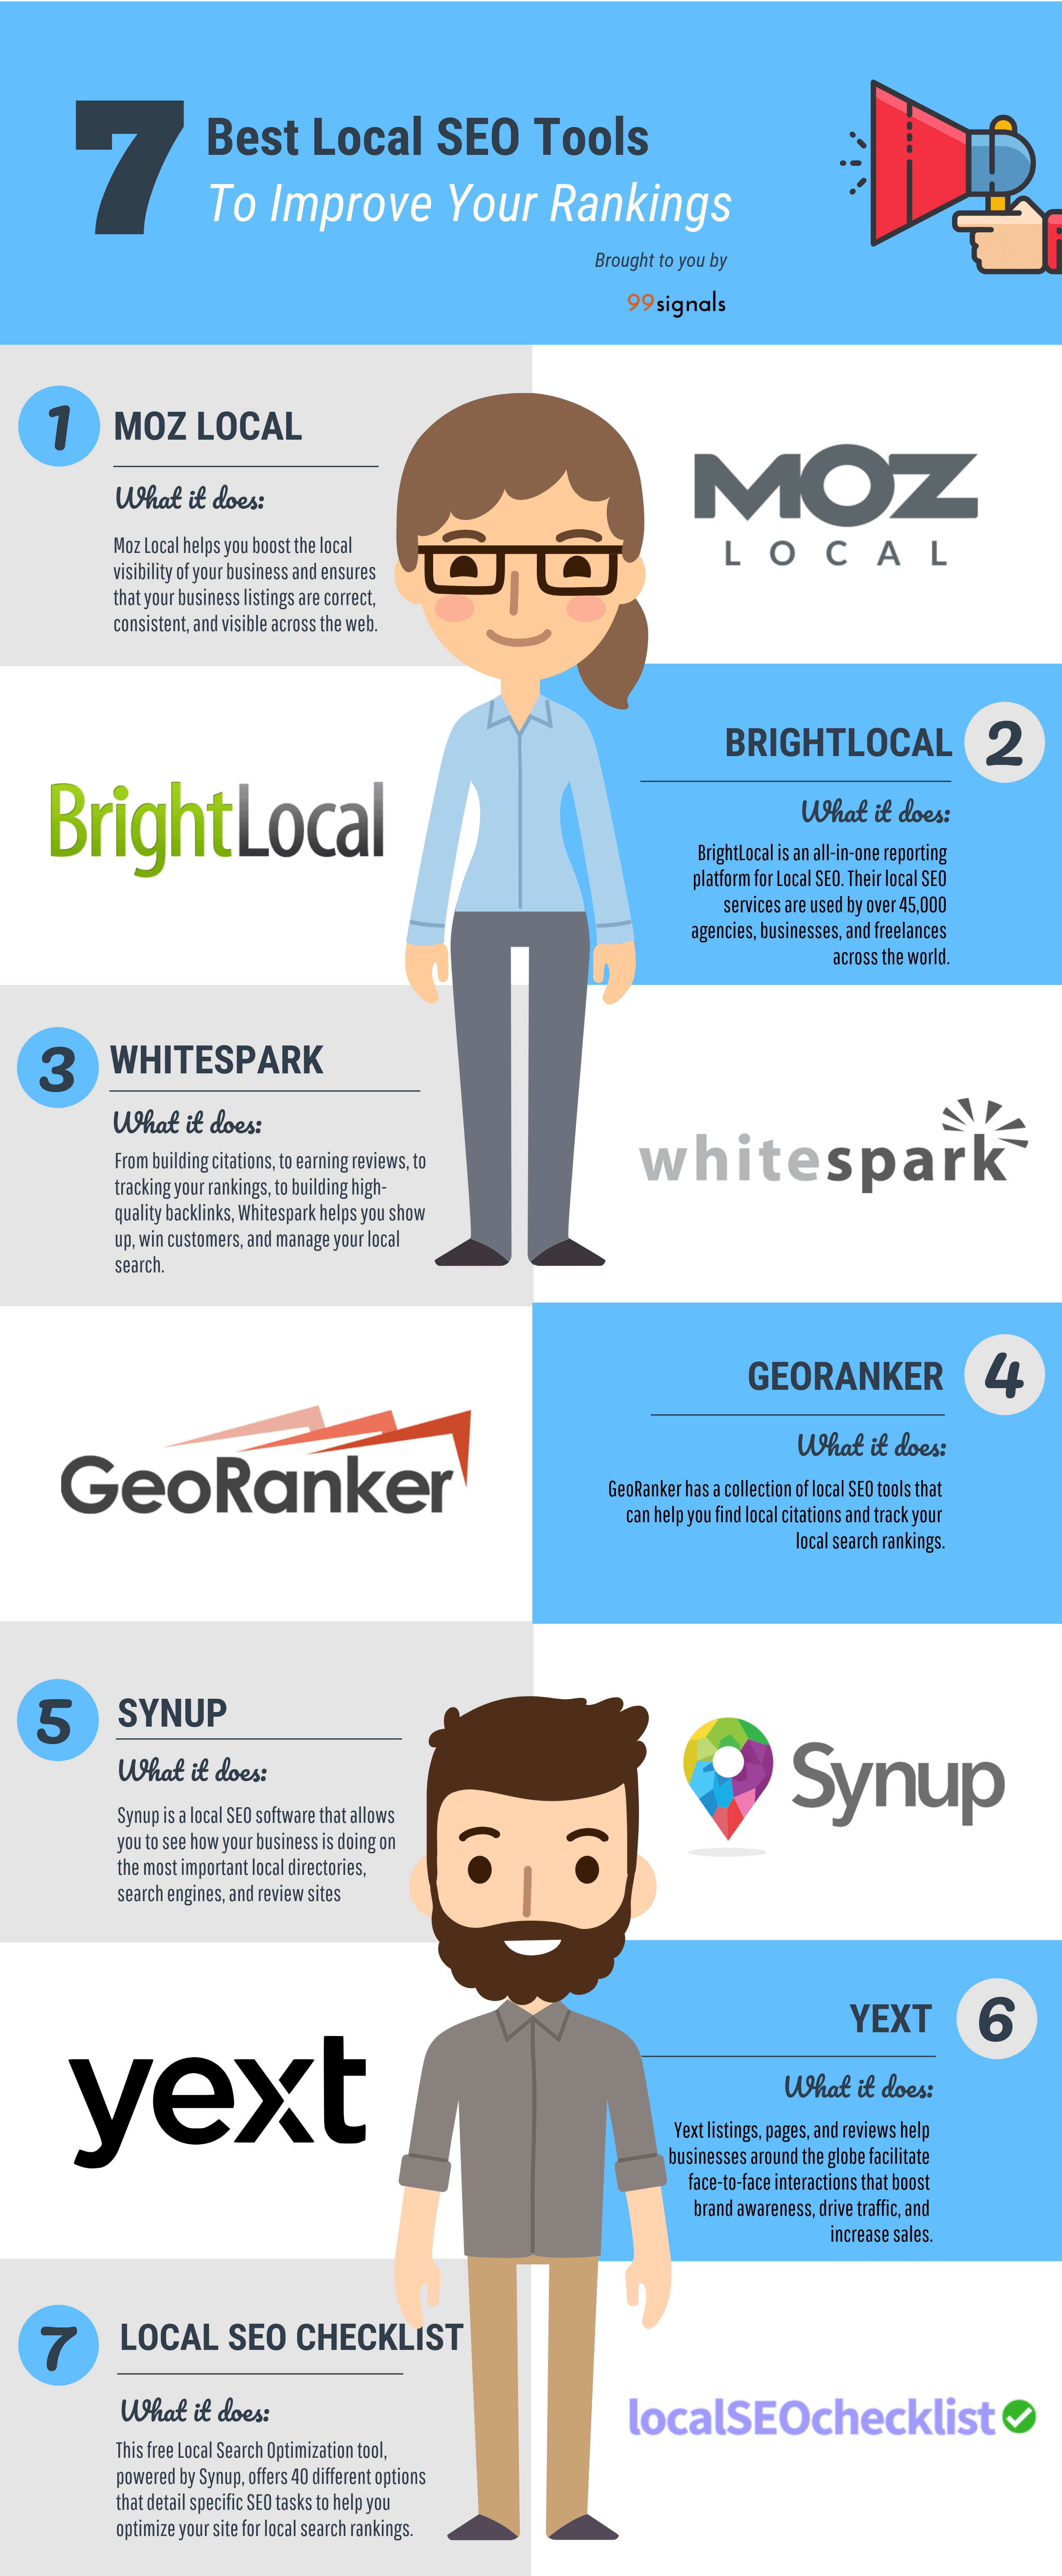 7 Best Local SEO Tools to Improve Your Rankings [Infographic]